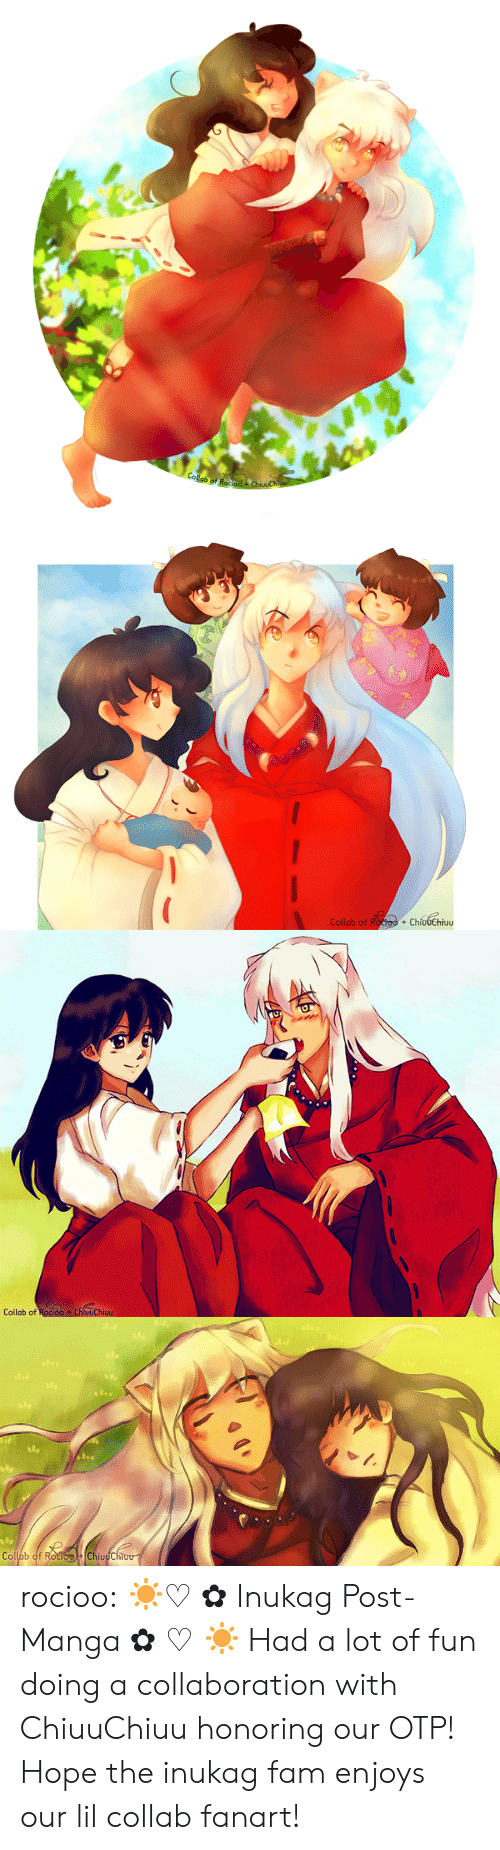 Fam, Target, and Tumblr: Collab of Roo  ChivuChi   Collab of Roctoo + ChíudChiuu  +   Collab of Rocioo ChluuChiuu   Op  Collab of RocioChiuuChiou rocioo:  ☀♡✿Inukag Post-Manga✿♡☀ Had a lot of fun doing a collaboration with ChiuuChiuuhonoring our OTP! Hope the inukag fam enjoys our lil collab fanart!